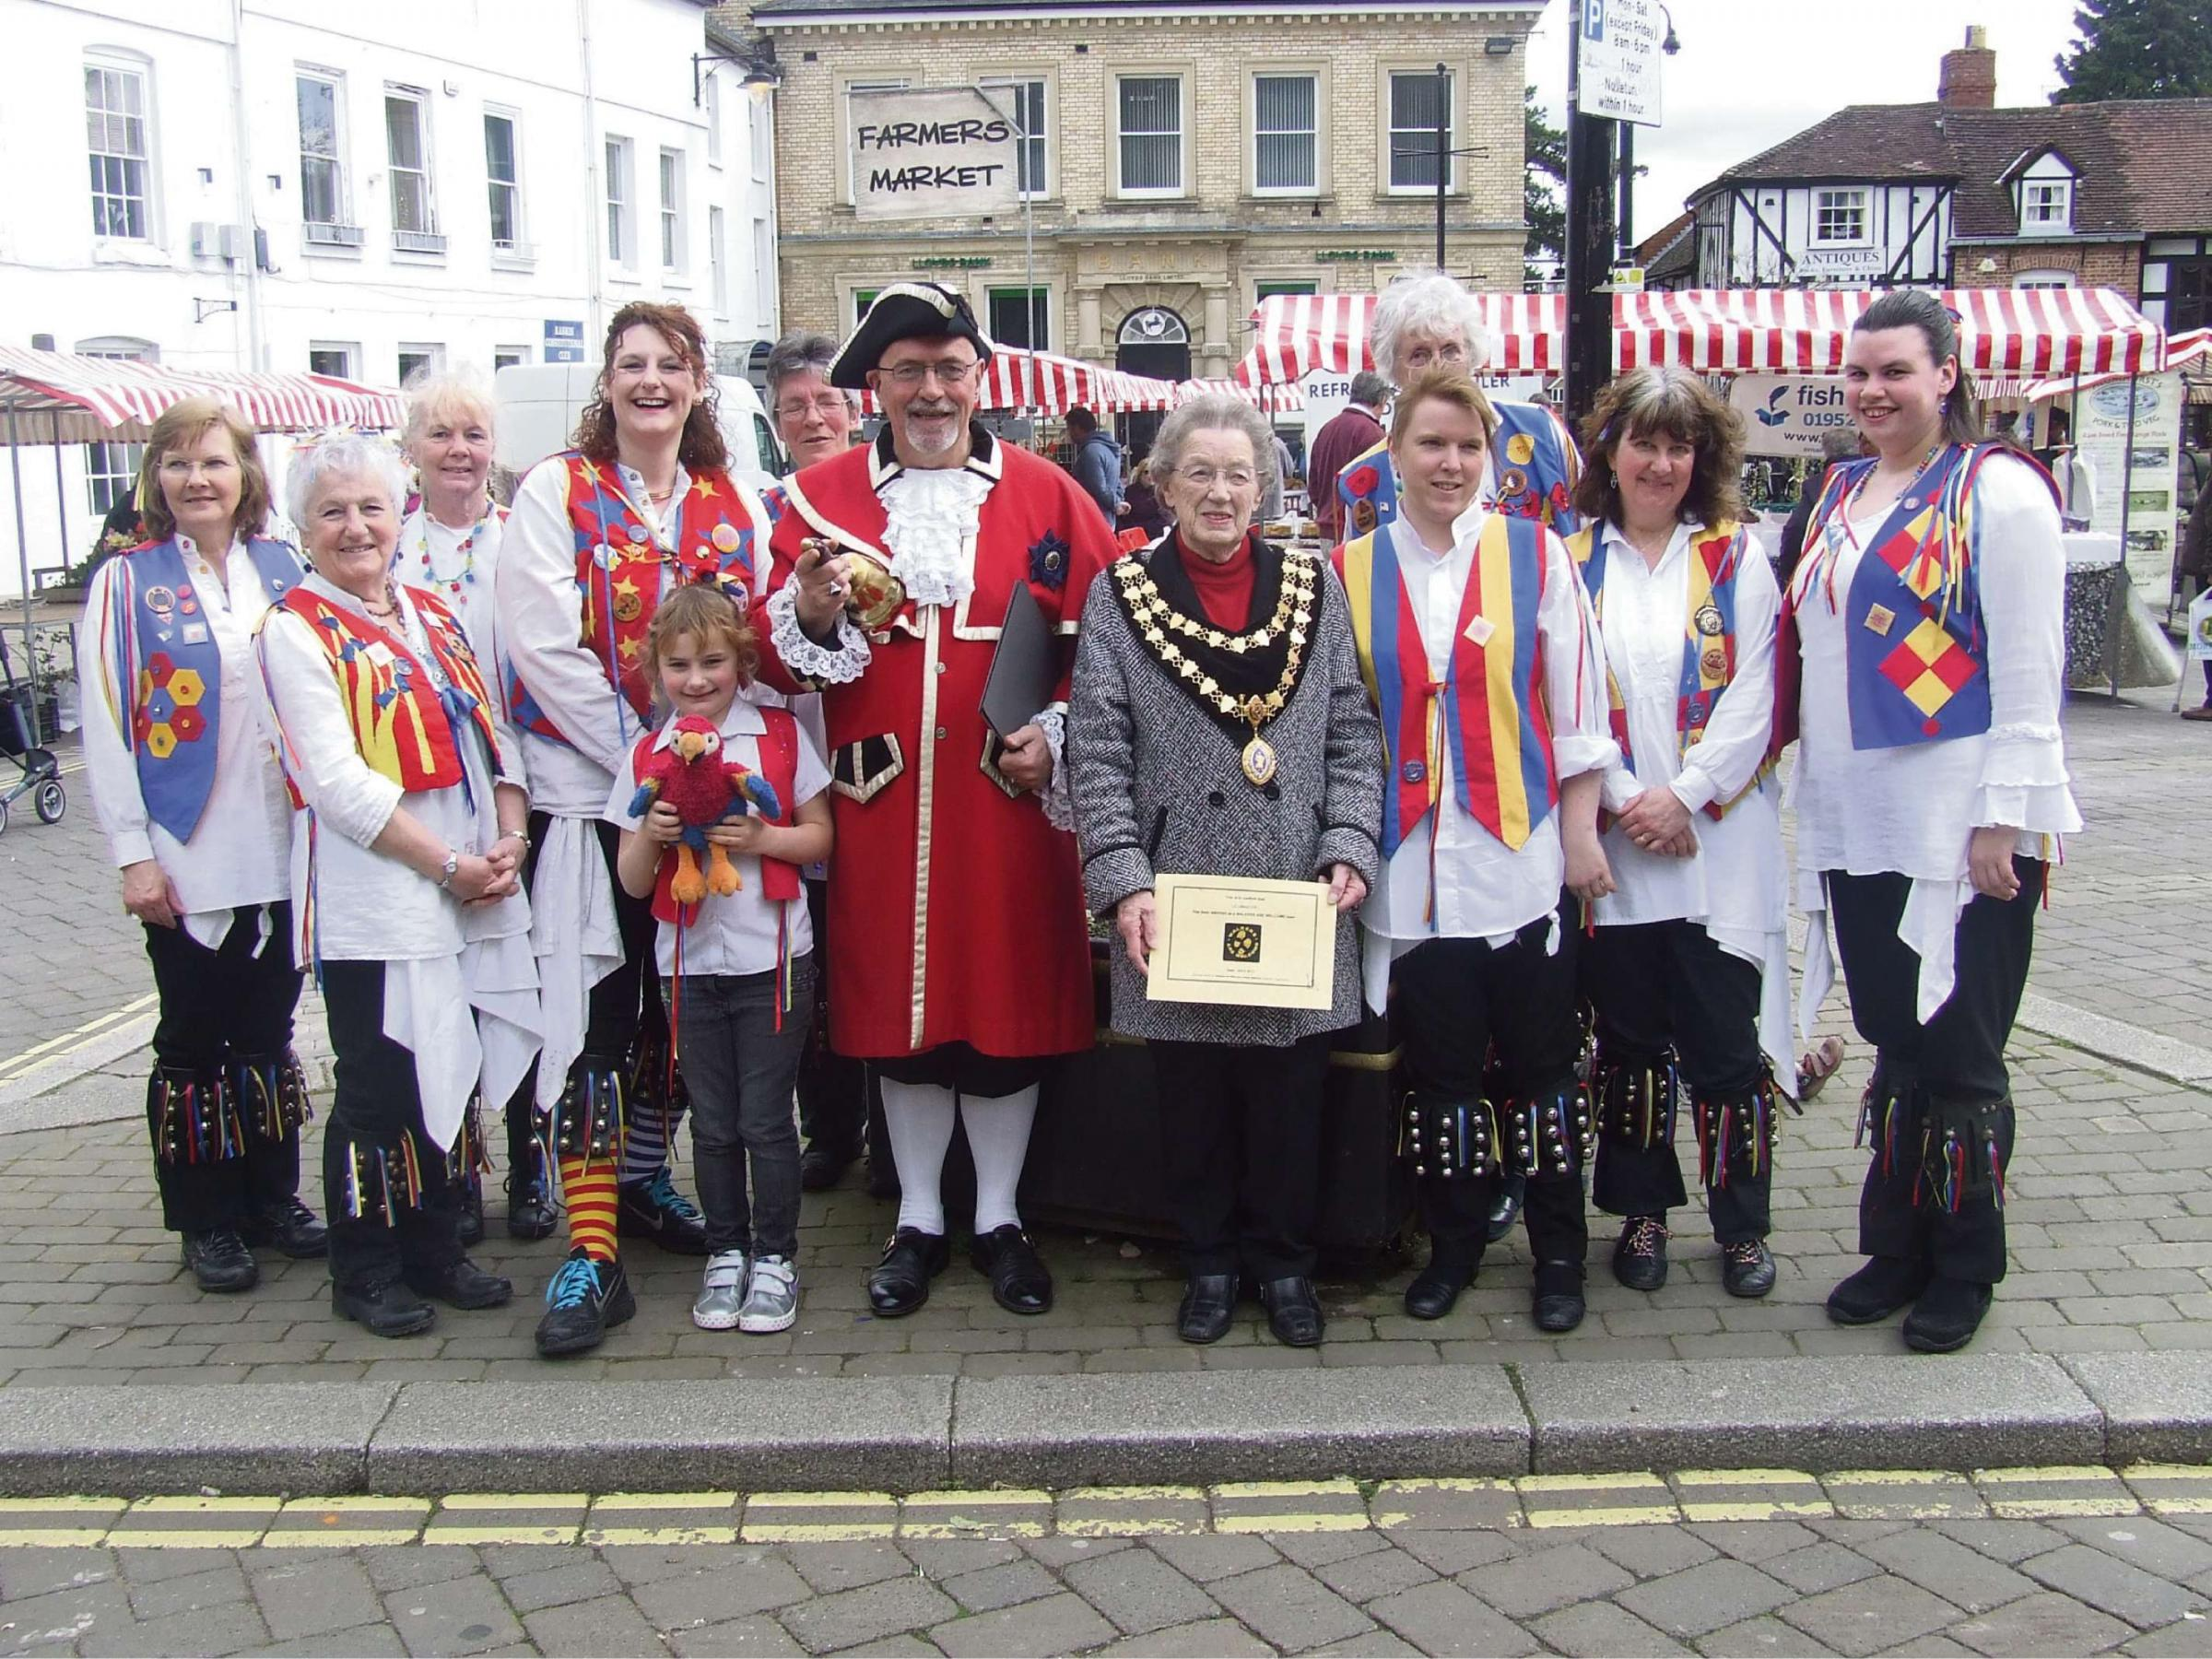 Leominster's mayor Mollie Cooke with the town crier and members of Jenny Pipes Morris.